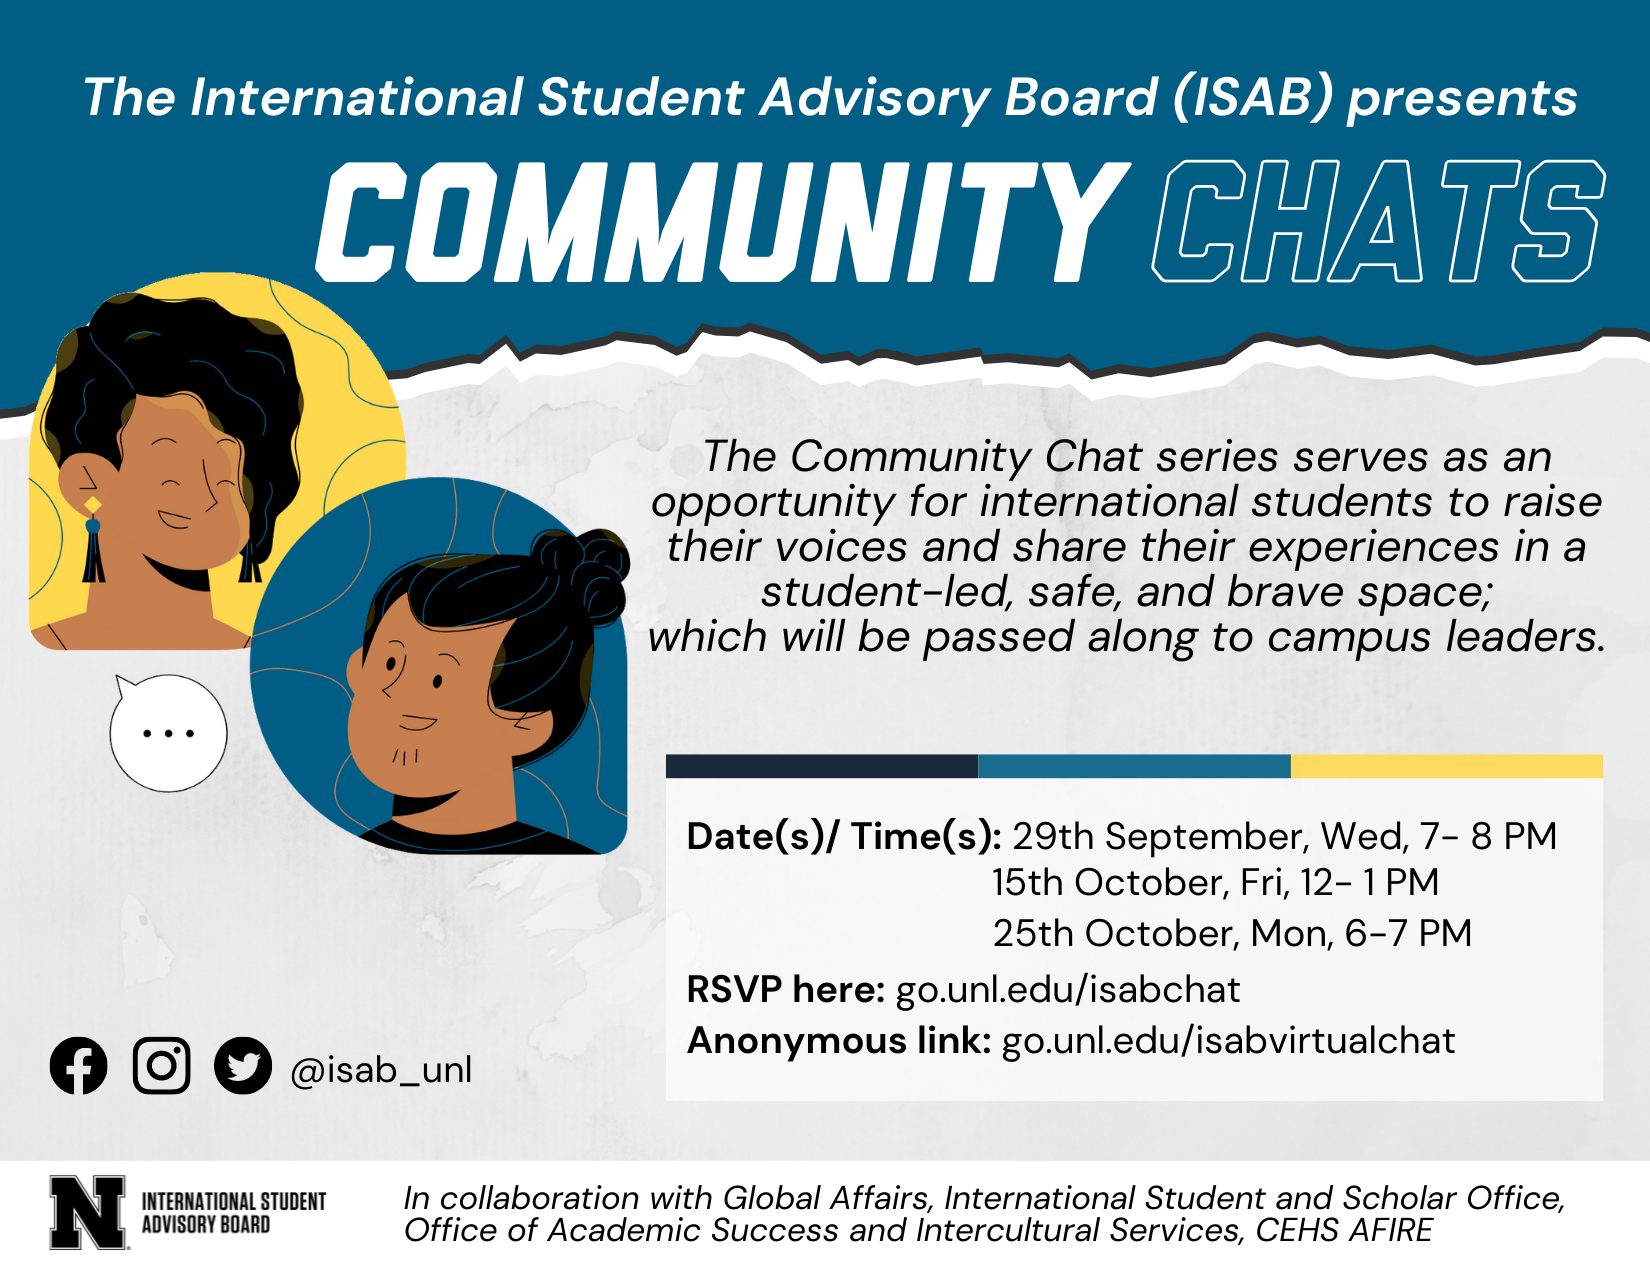 The International Student Advisory Board (ISAB) is hosting a series of Community Chats for international students where students will be able to raise their voices and share their experiences in a student-led, safe, and brave space.